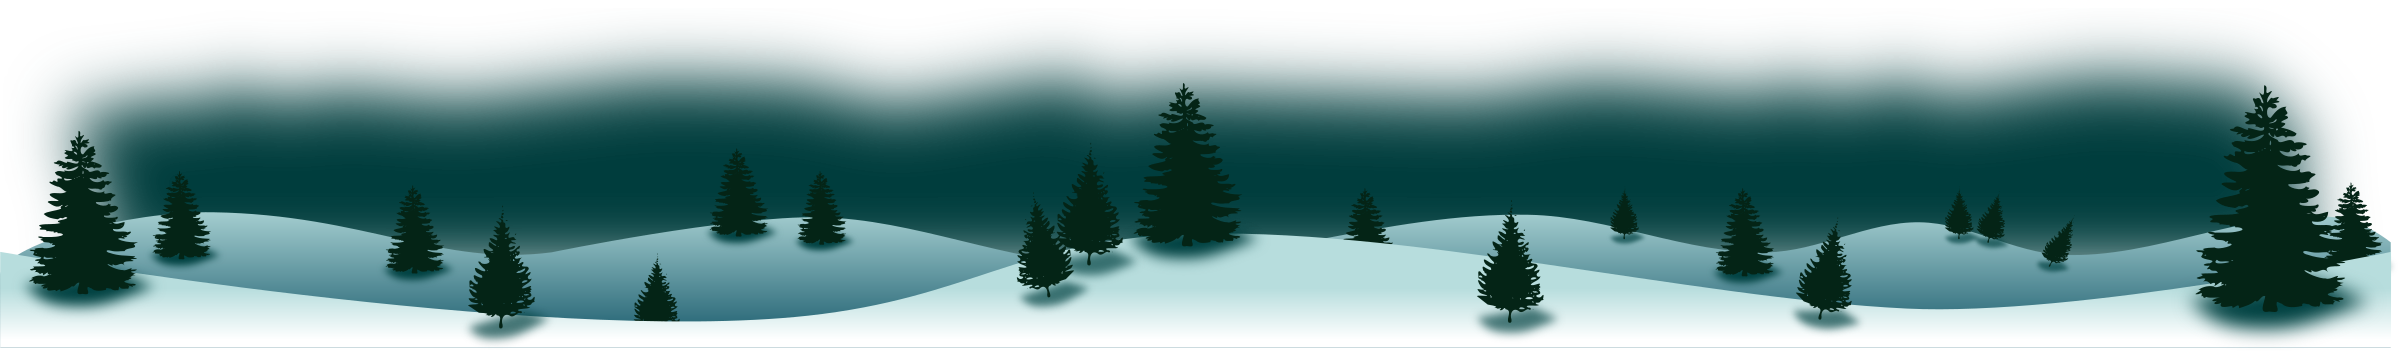 Panorama. Winter clipart forest